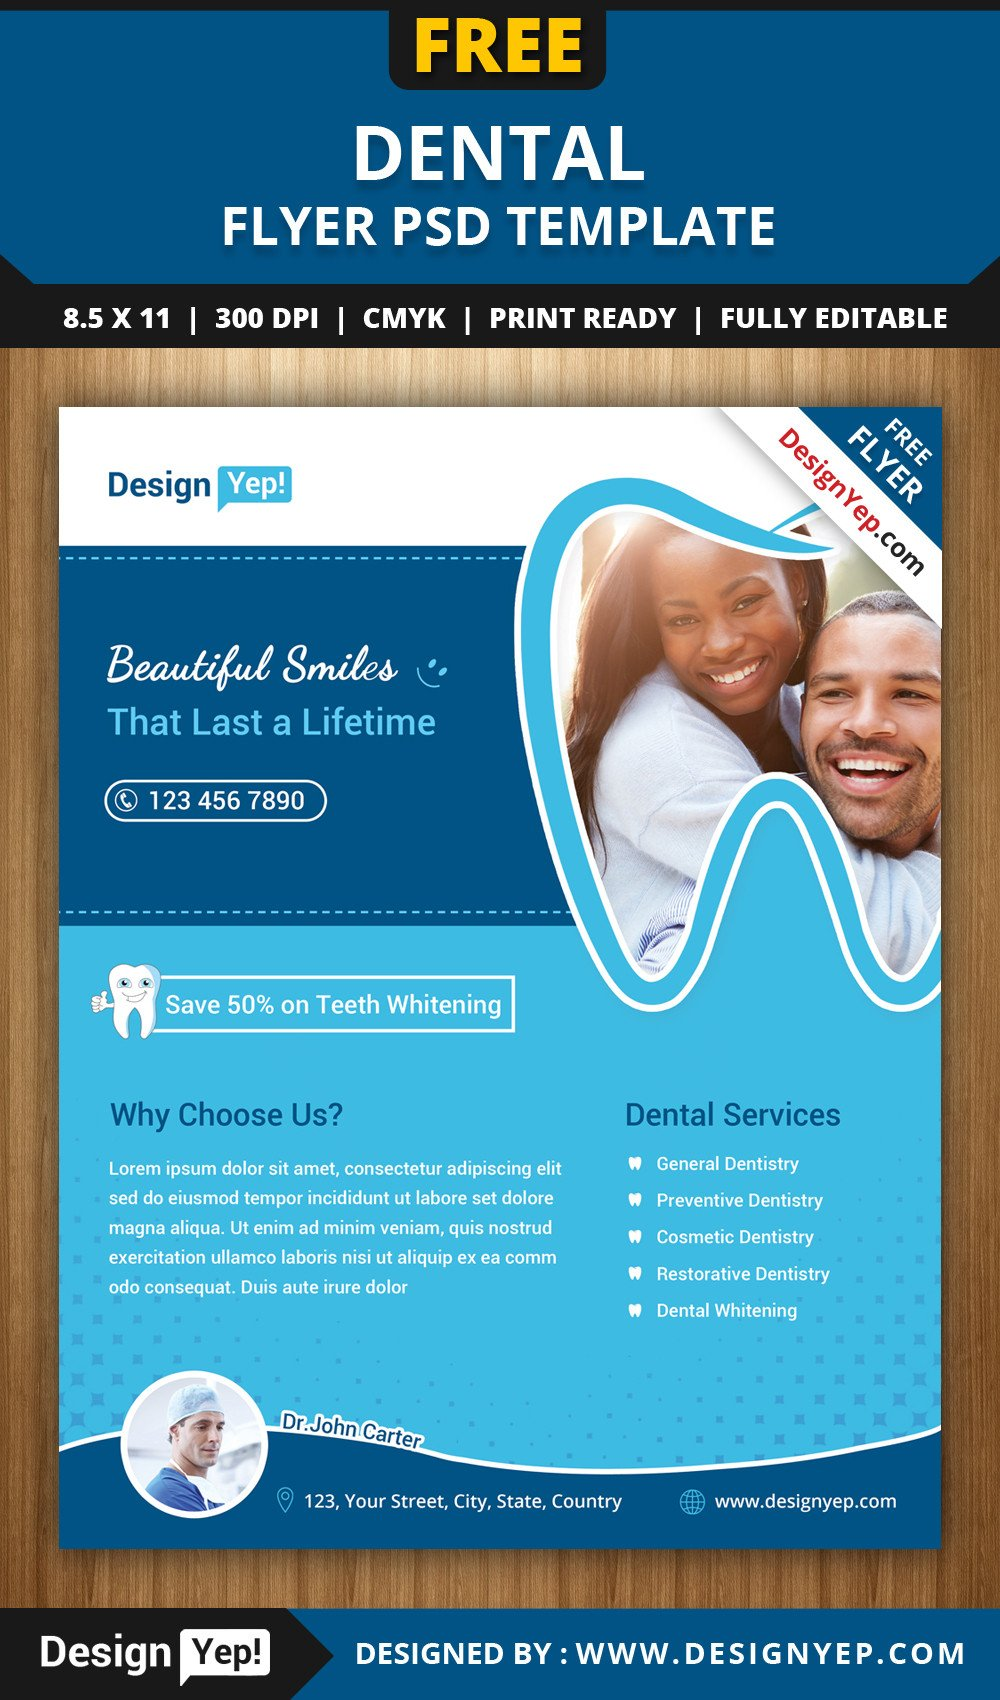 Templates for Flyers Free Free Dental Flyer Psd Template Designyep